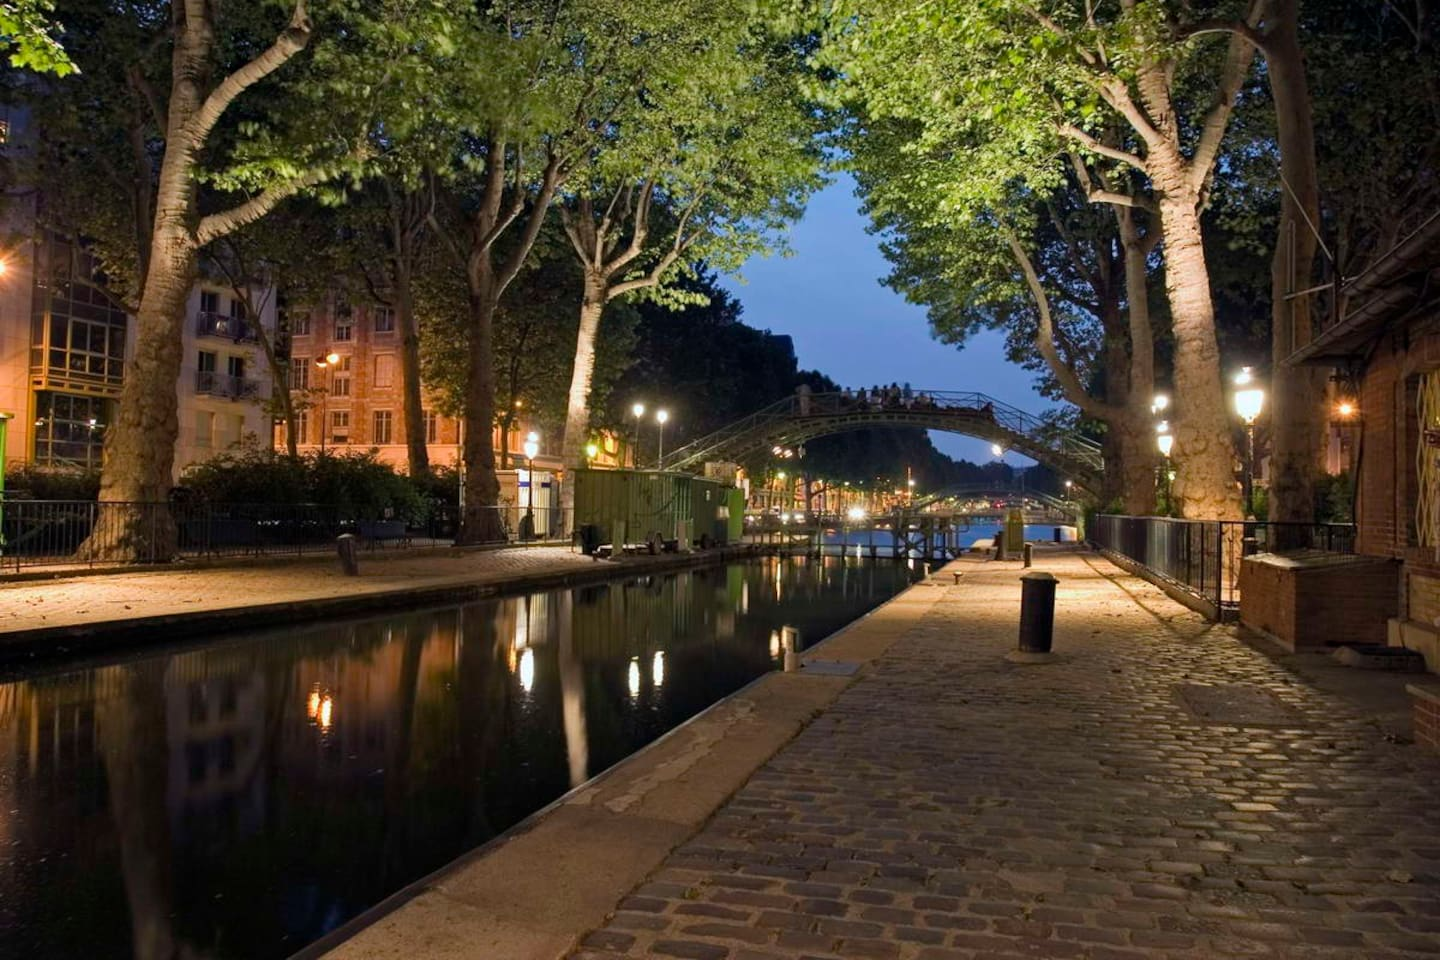 Canal Saint Martin | République | our apartment is at 2 minutes walk distance from here